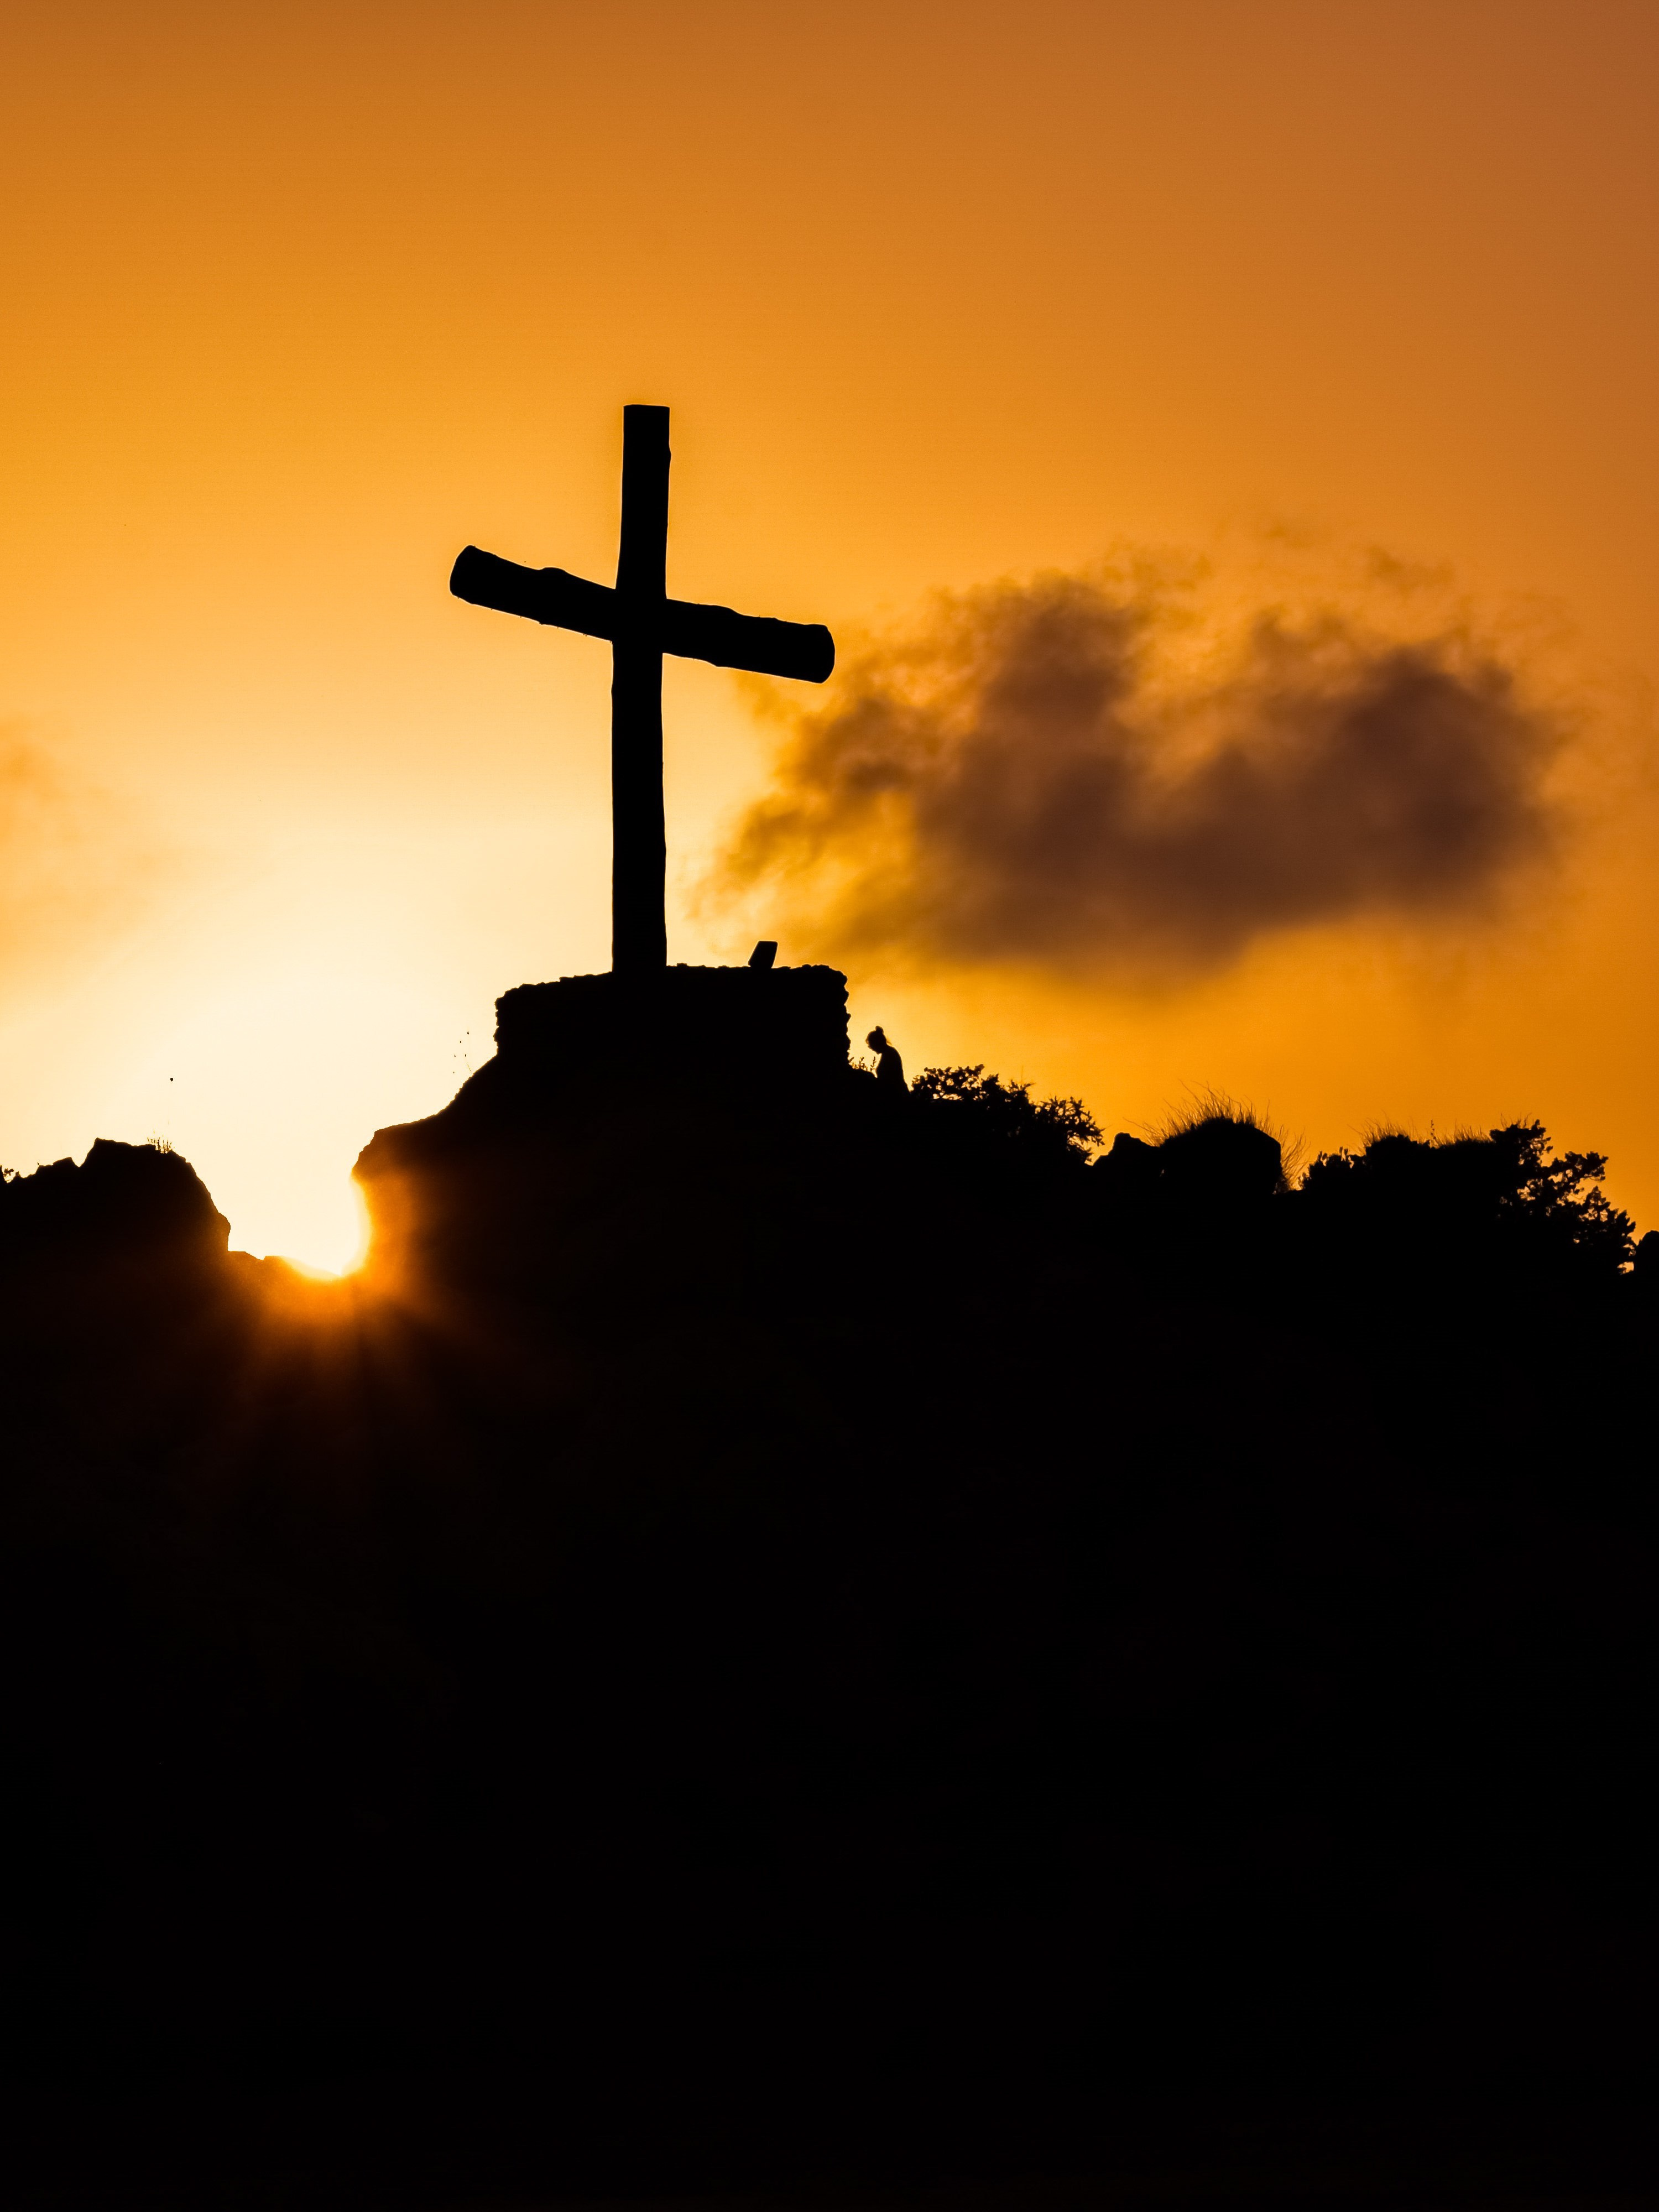 Cool Iphone 4 Wallpapers Hd Free Stock Photo Of Christianity Cross Hill